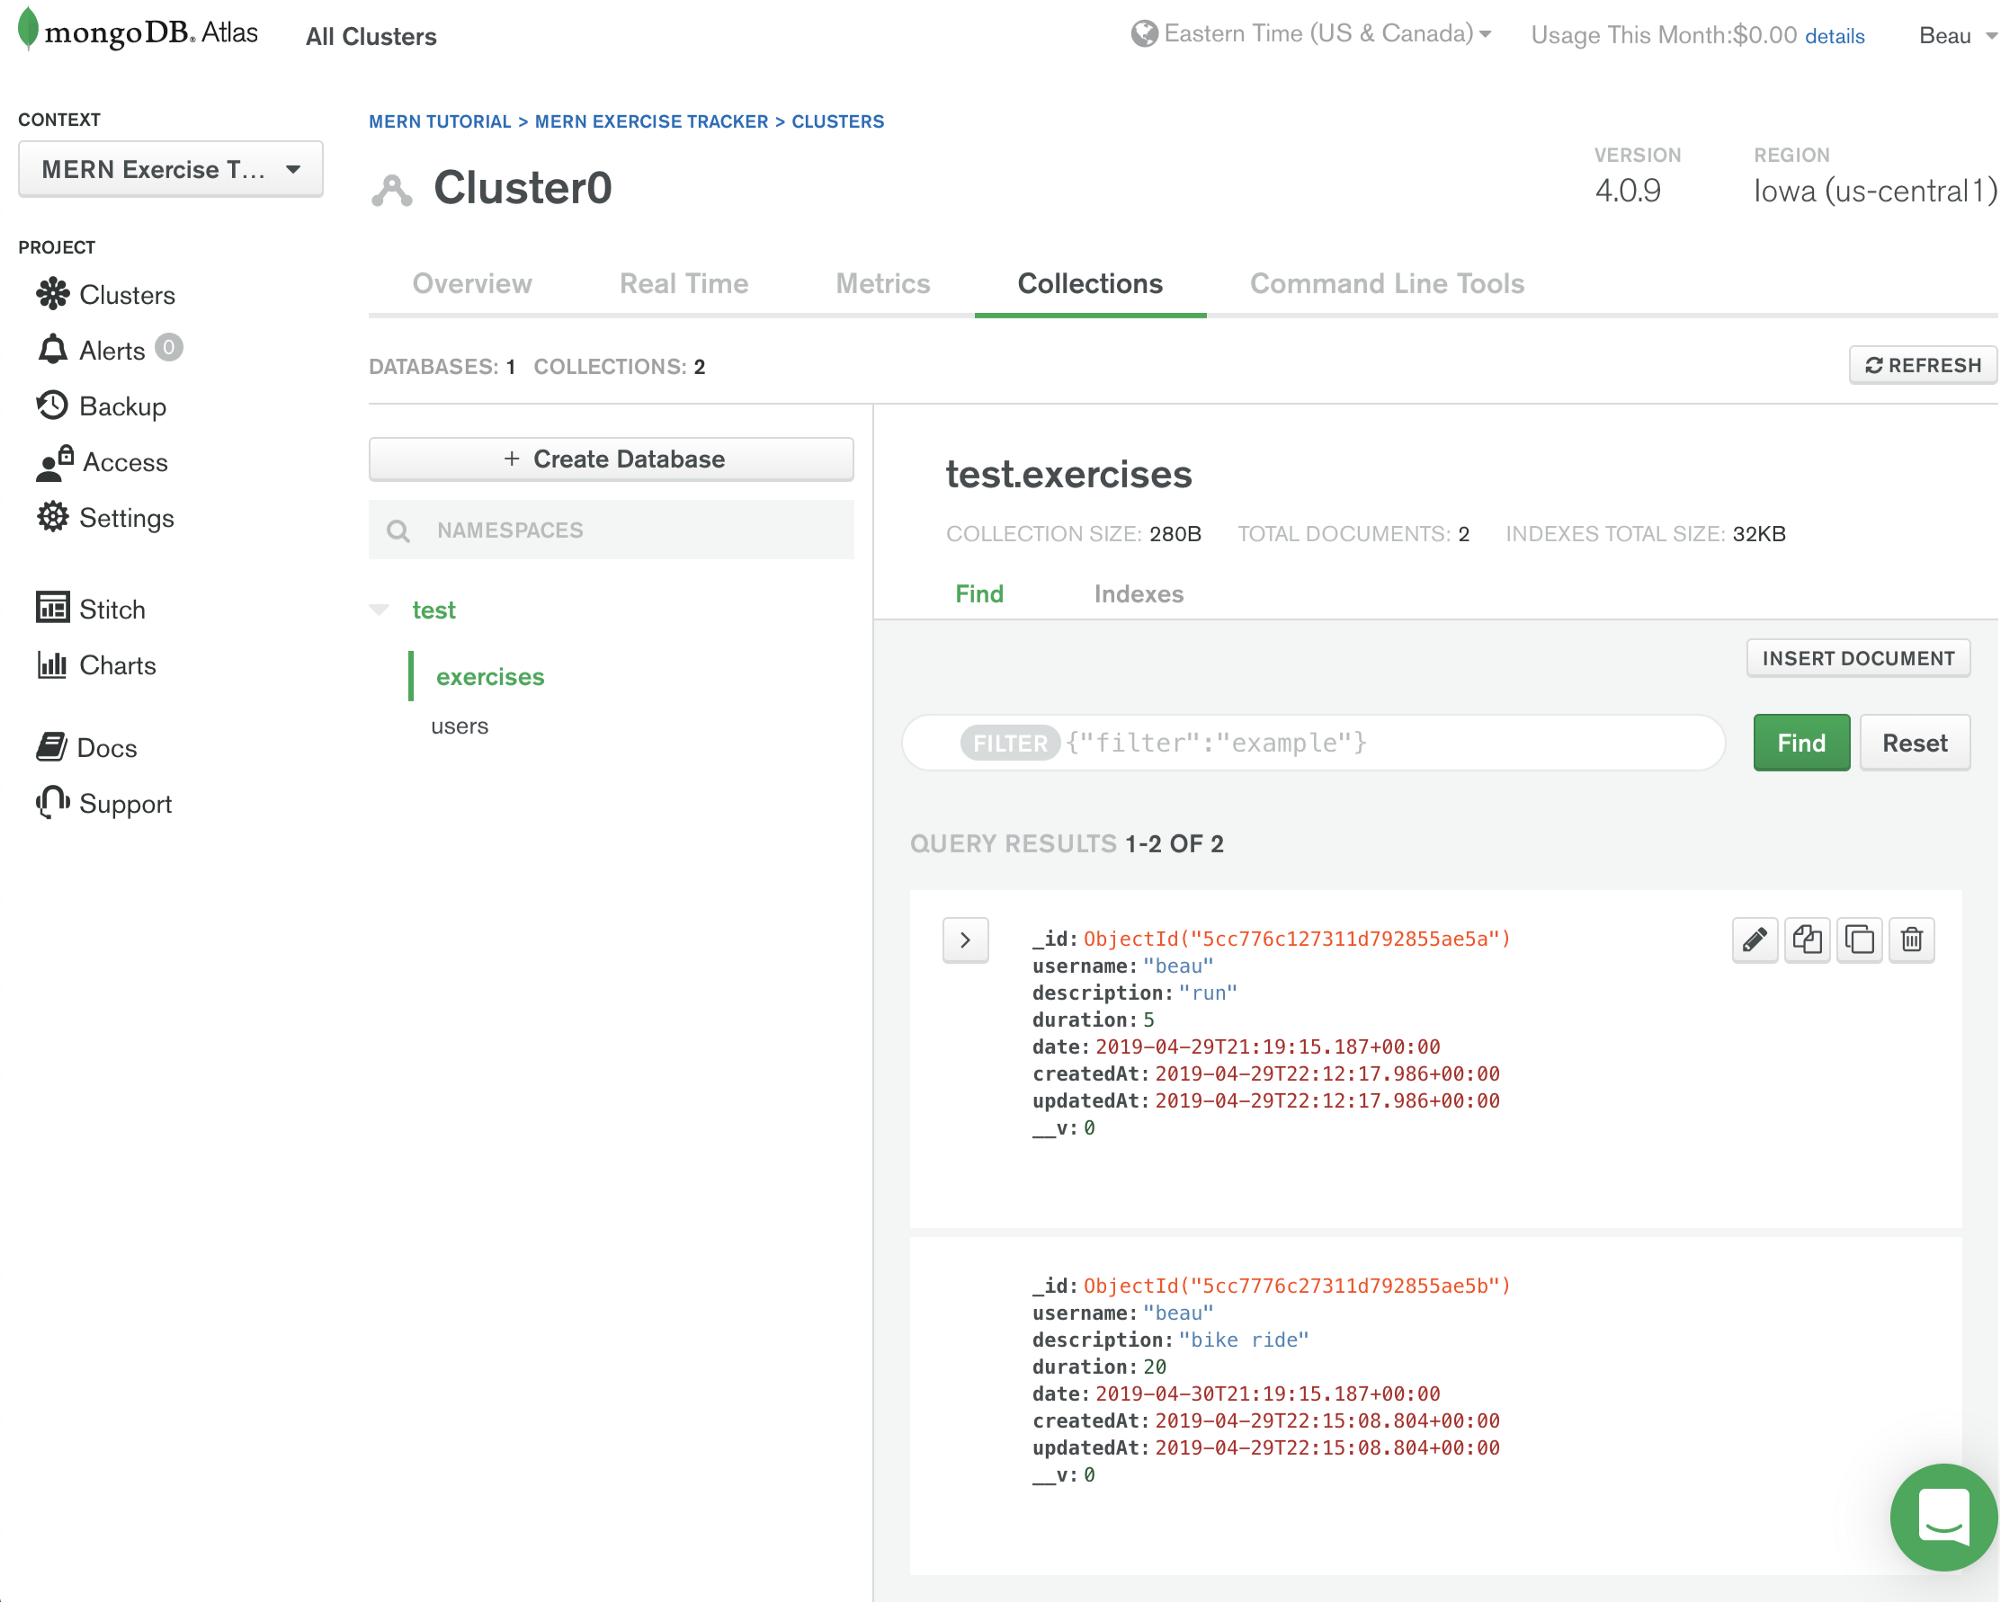 Learn the MERN stack by building an exercise tracker — MERN Tutorial